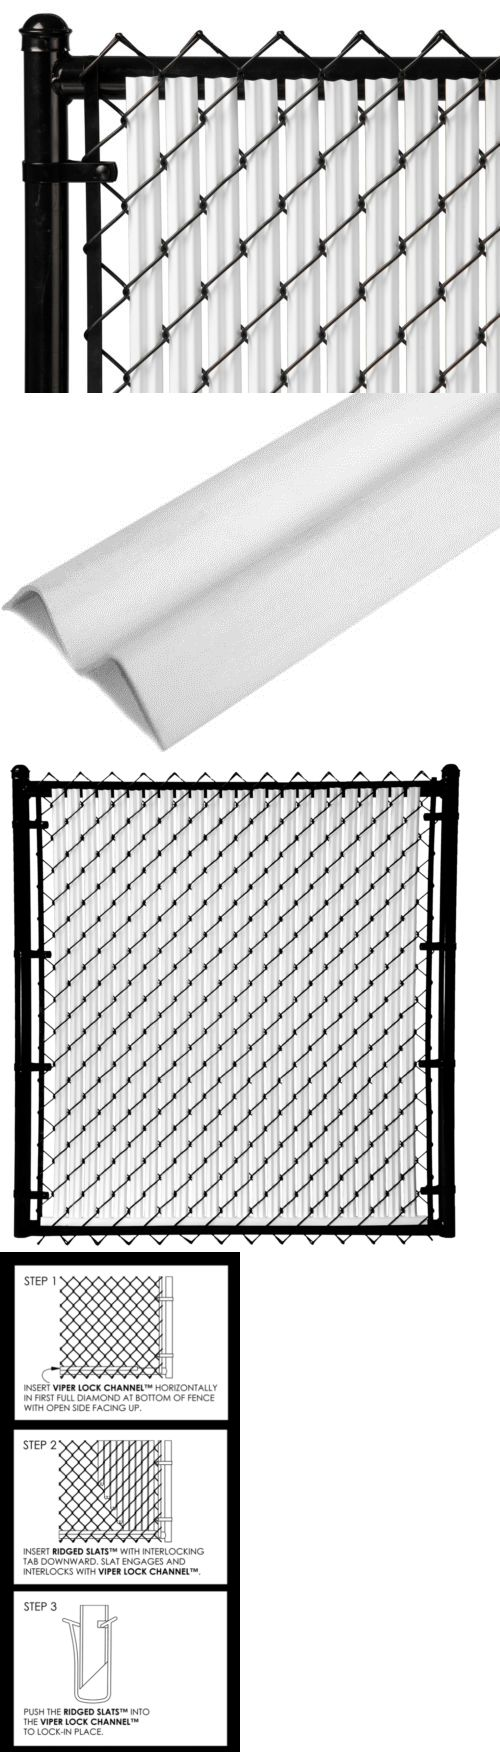 Privacy screen for chain link fence ebay - Chain Link Fencing 180984 Slat Depot White 5ft Ridged Slat For Chain Link Fence